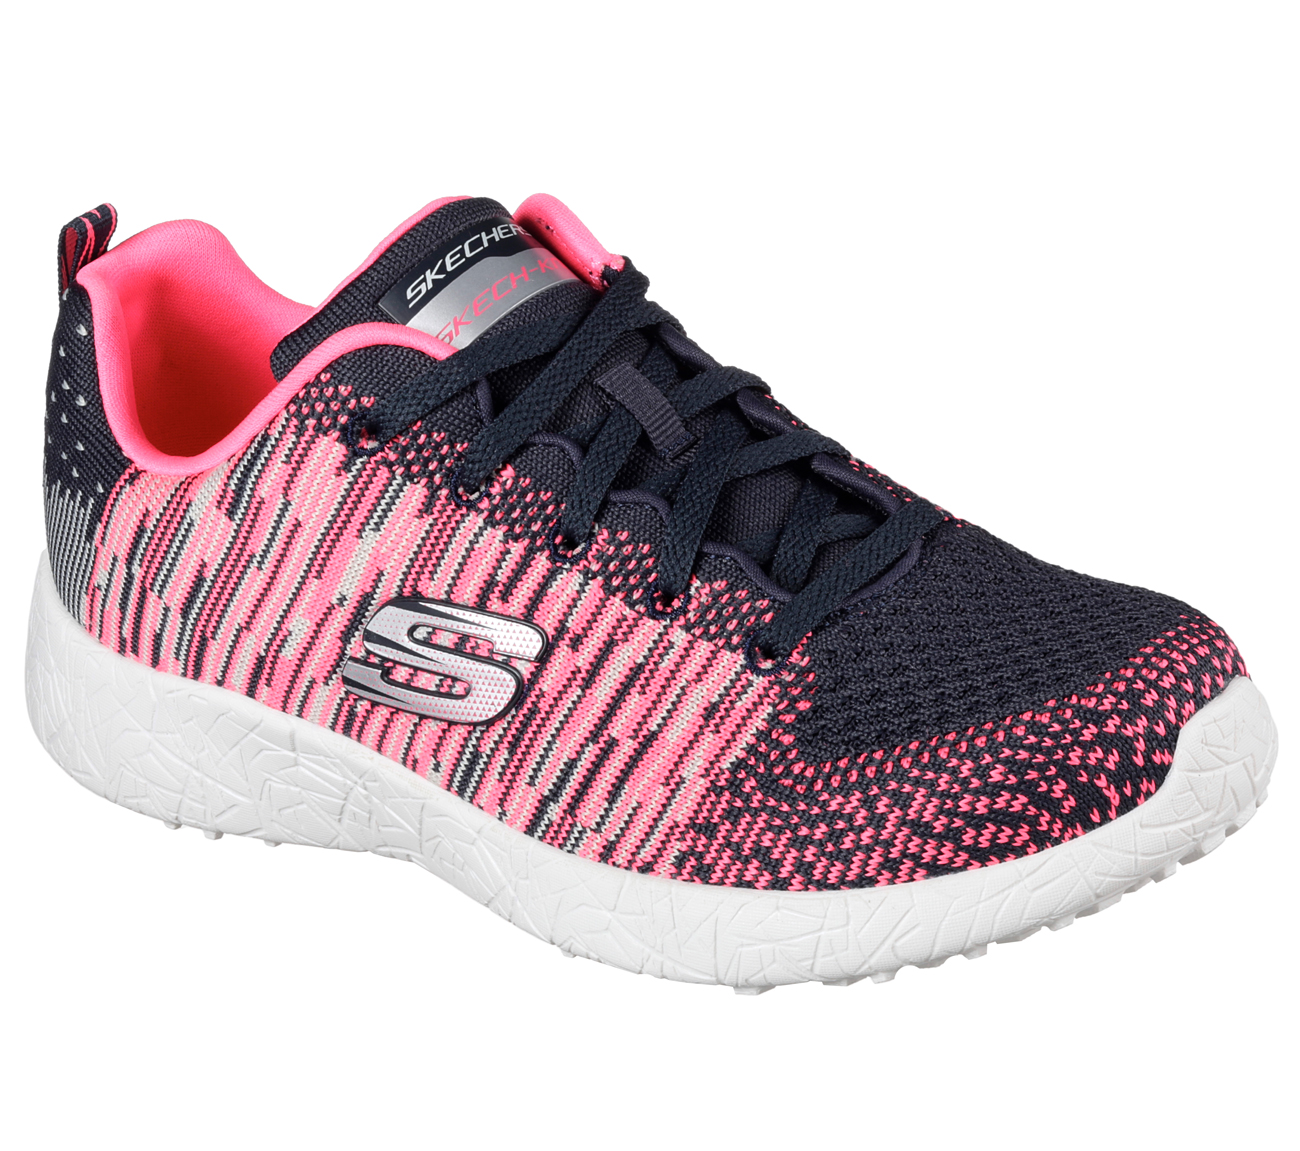 Buy SKECHERS Burst Ellipse Sport Shoes Only 6500